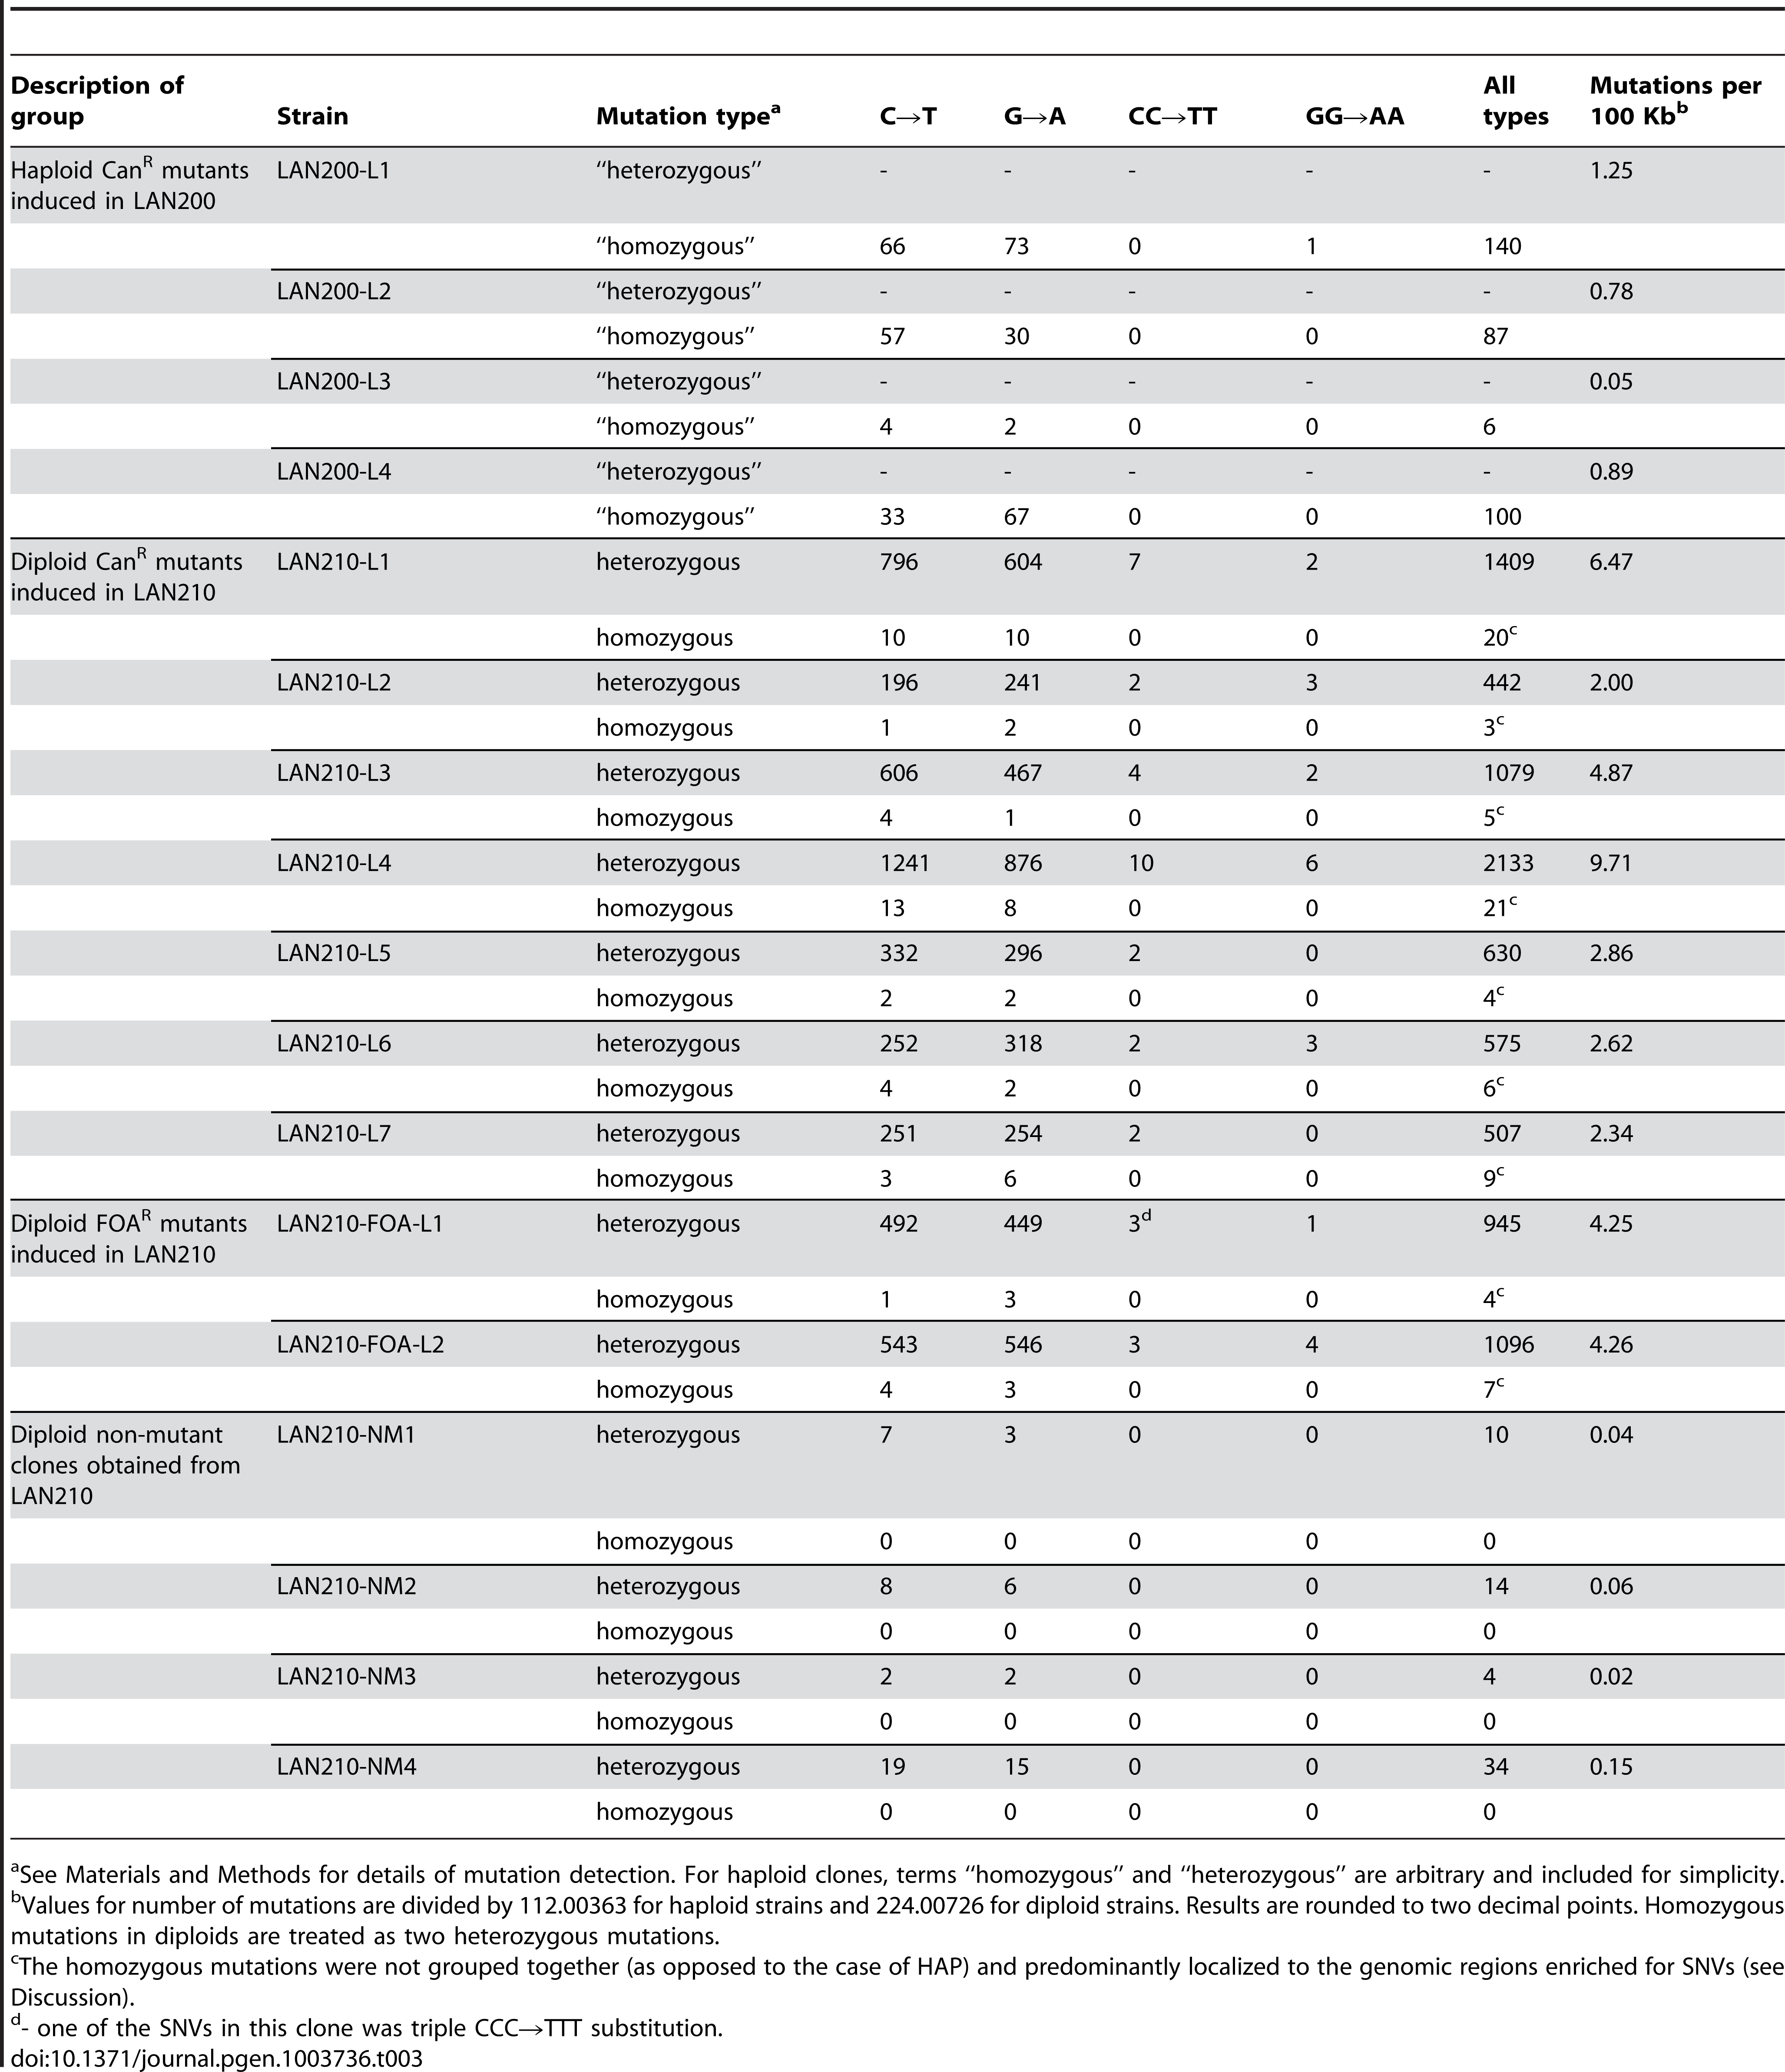 Summary of all detected mutations in PmCDA1-treated clones.